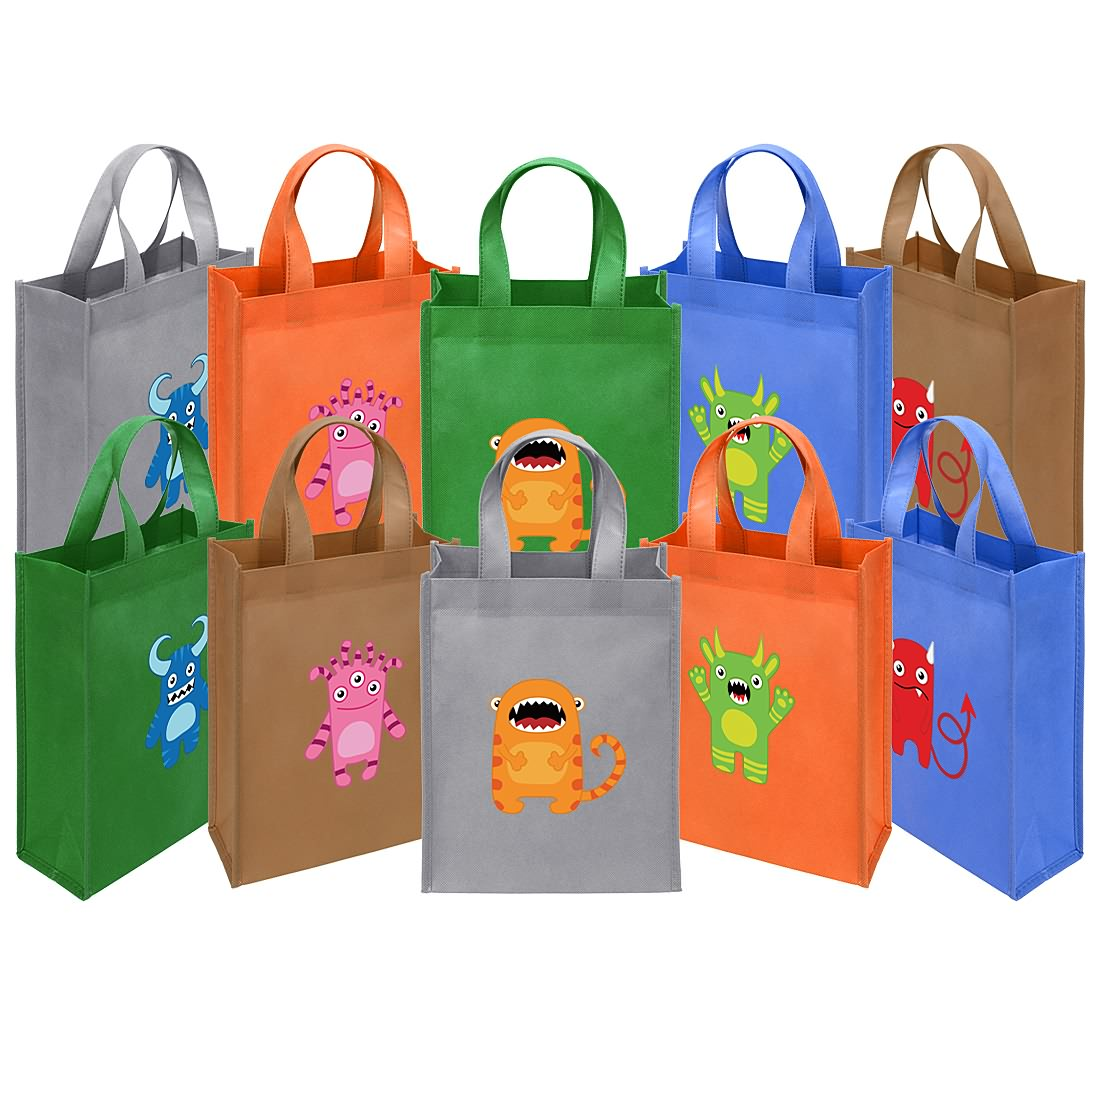 Gift Bag Toys : Ava kings pack reusable party favor goodie bags for